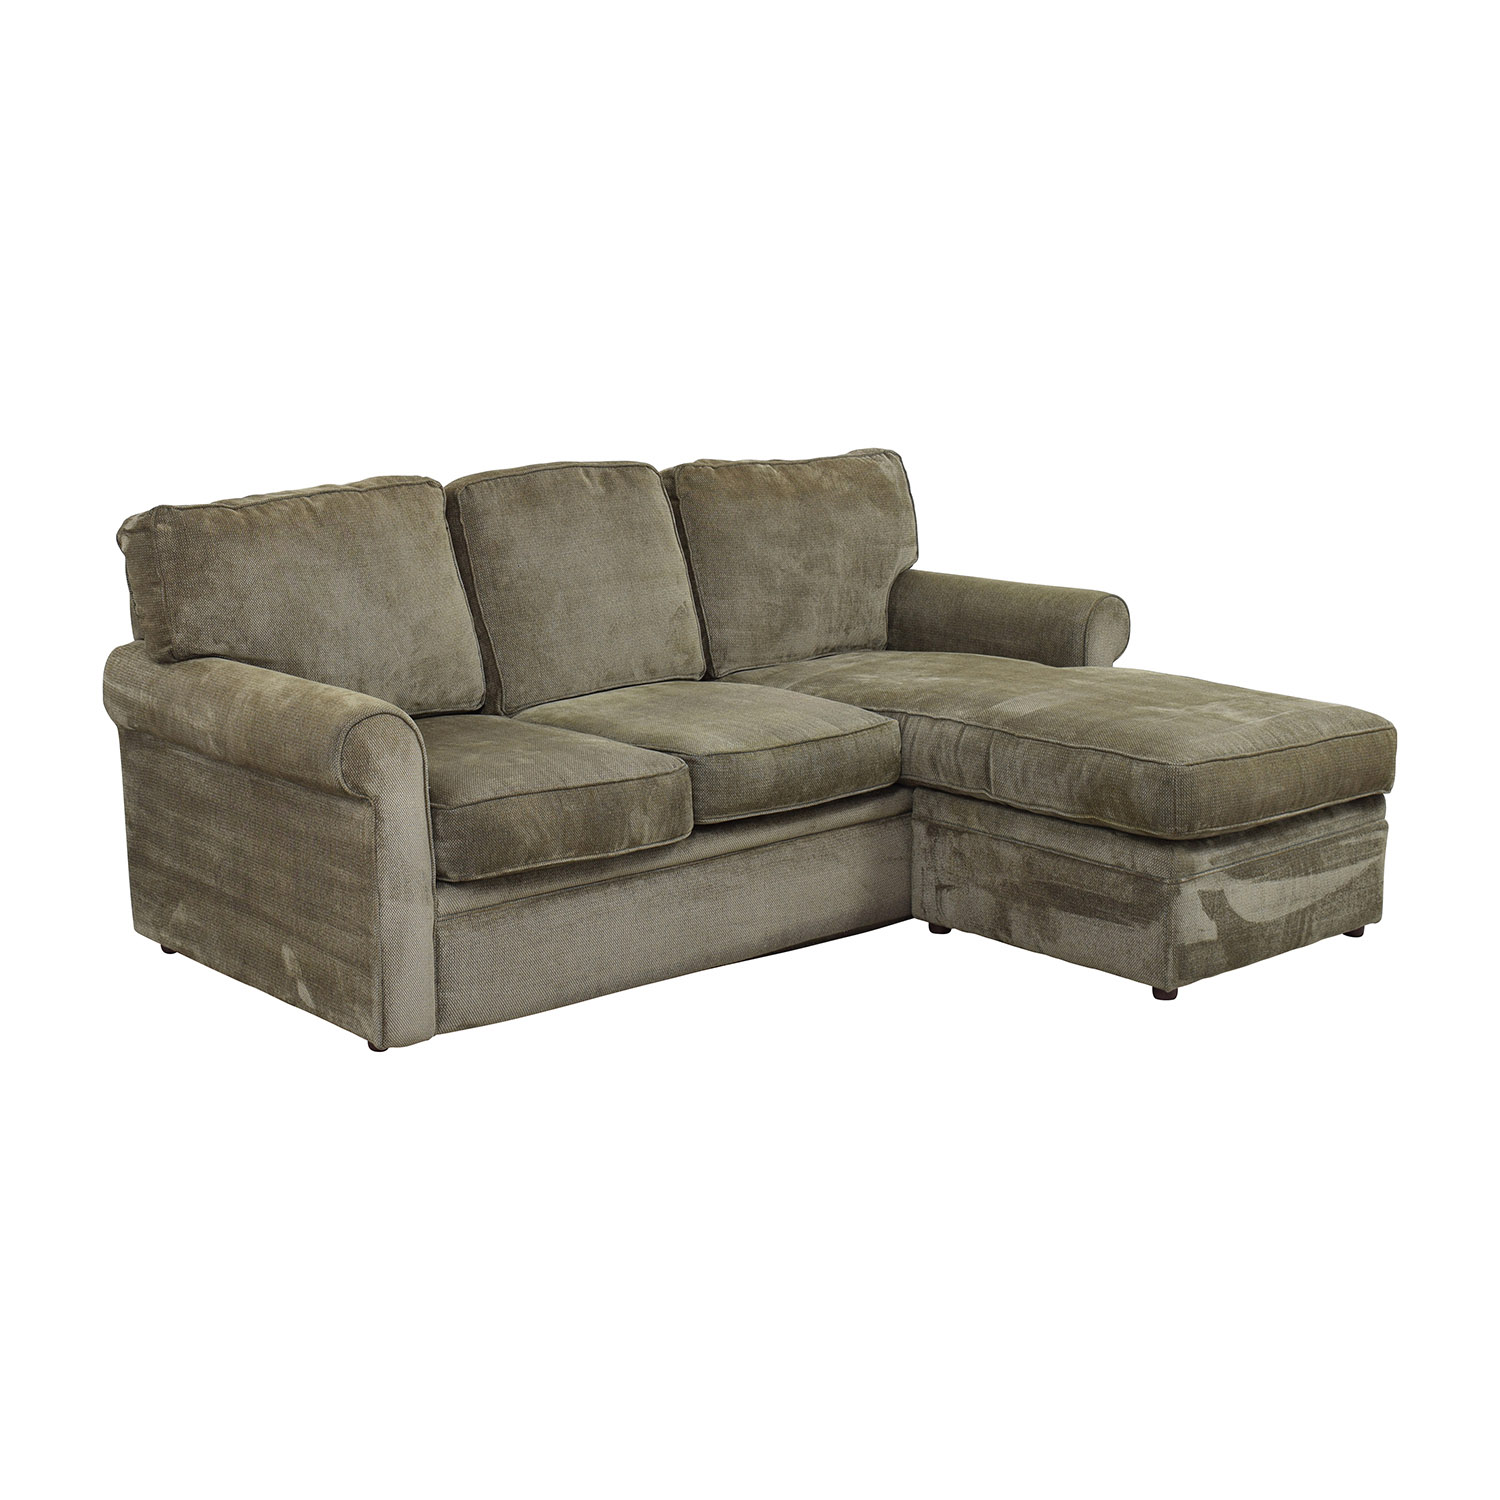 67 Off Rowe Furniture Rowe Furniture Green Sectional With Curved Arms Sofas